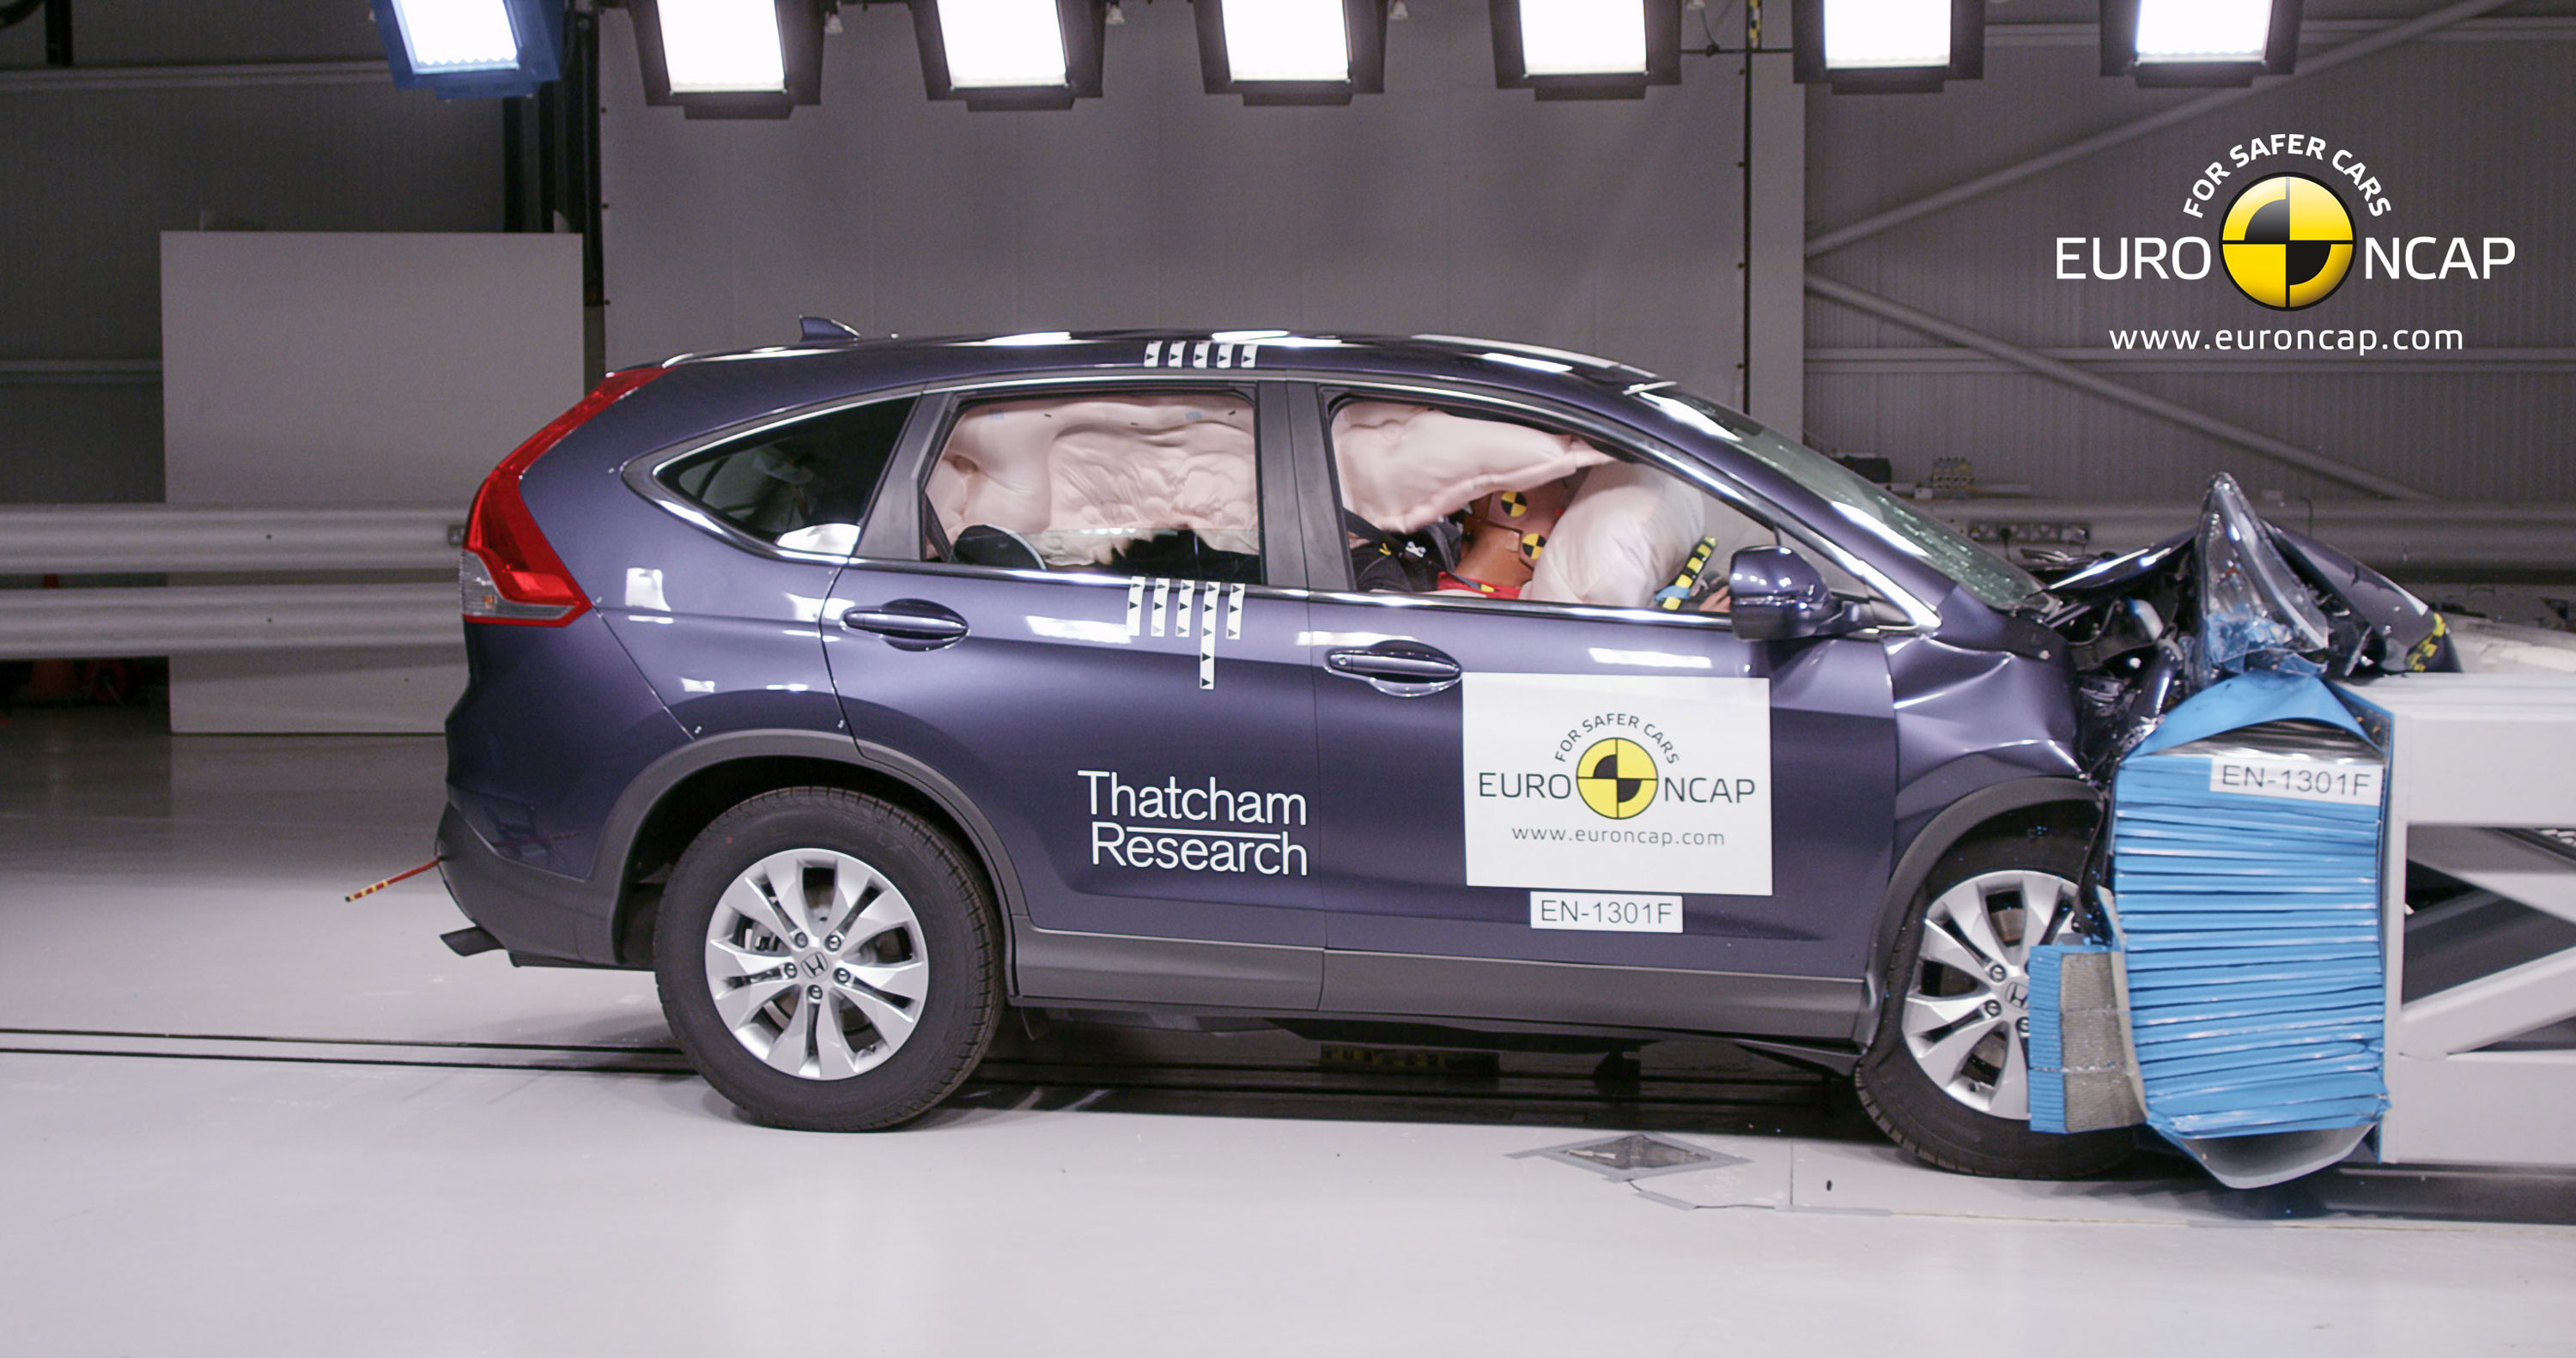 2013 honda cr v 5 stars in euro ncap crash test. Black Bedroom Furniture Sets. Home Design Ideas